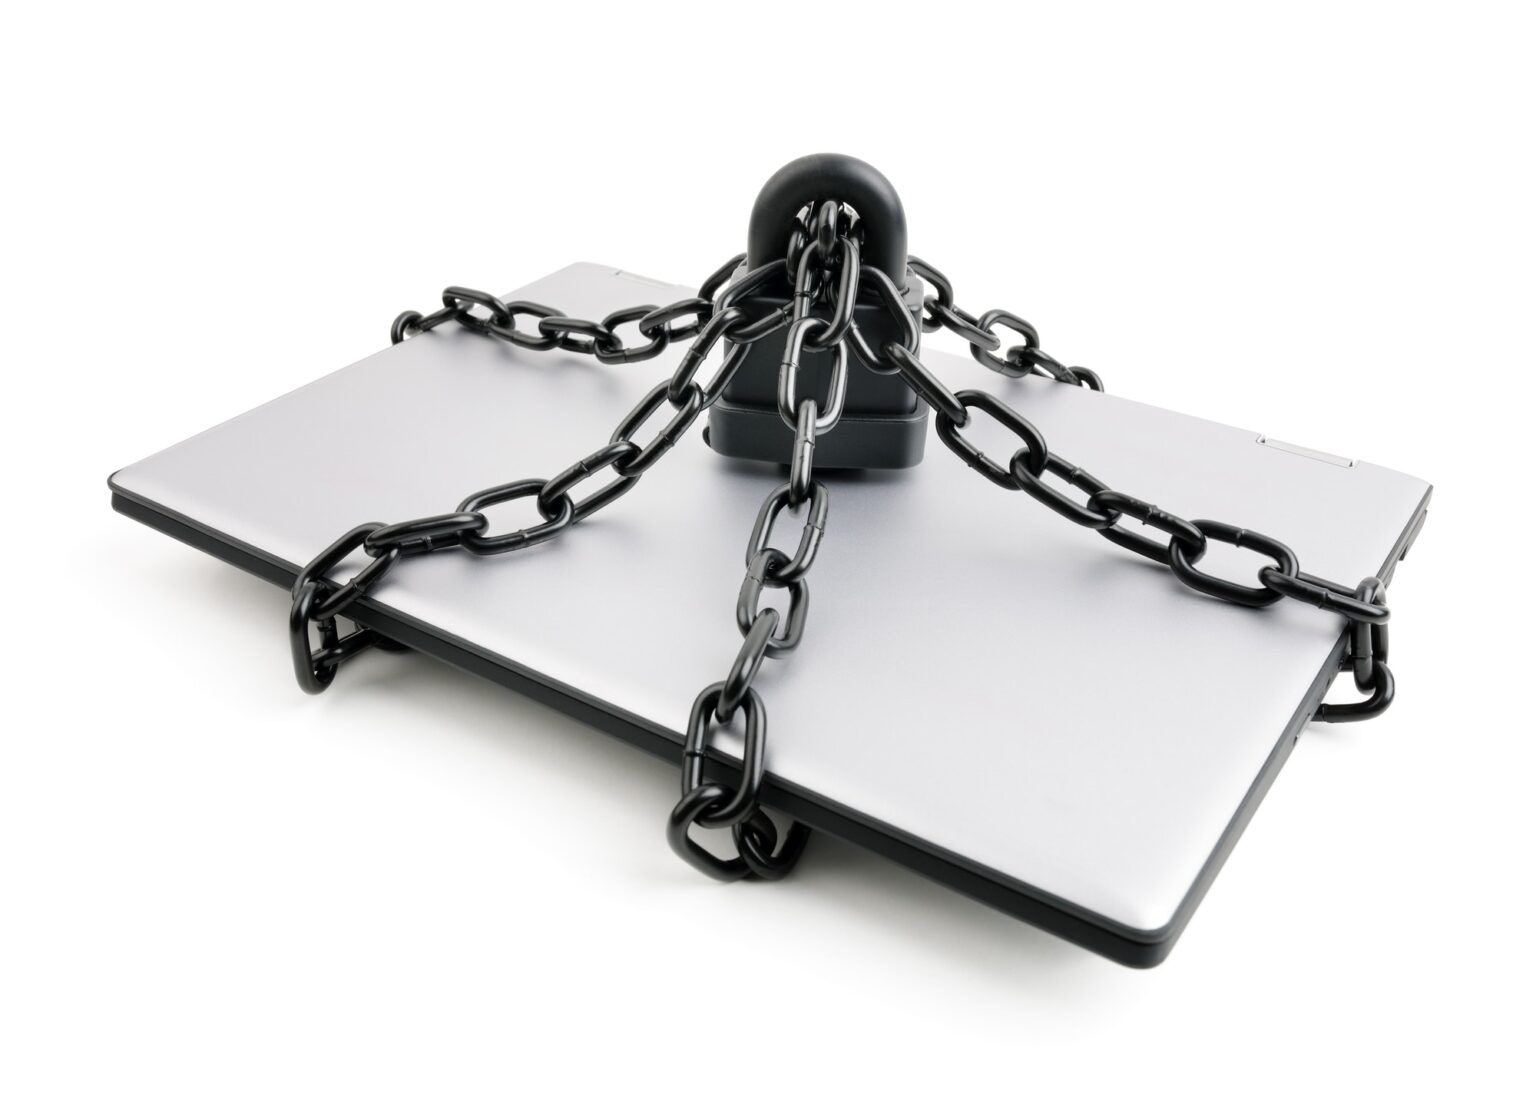 Computer and internet security